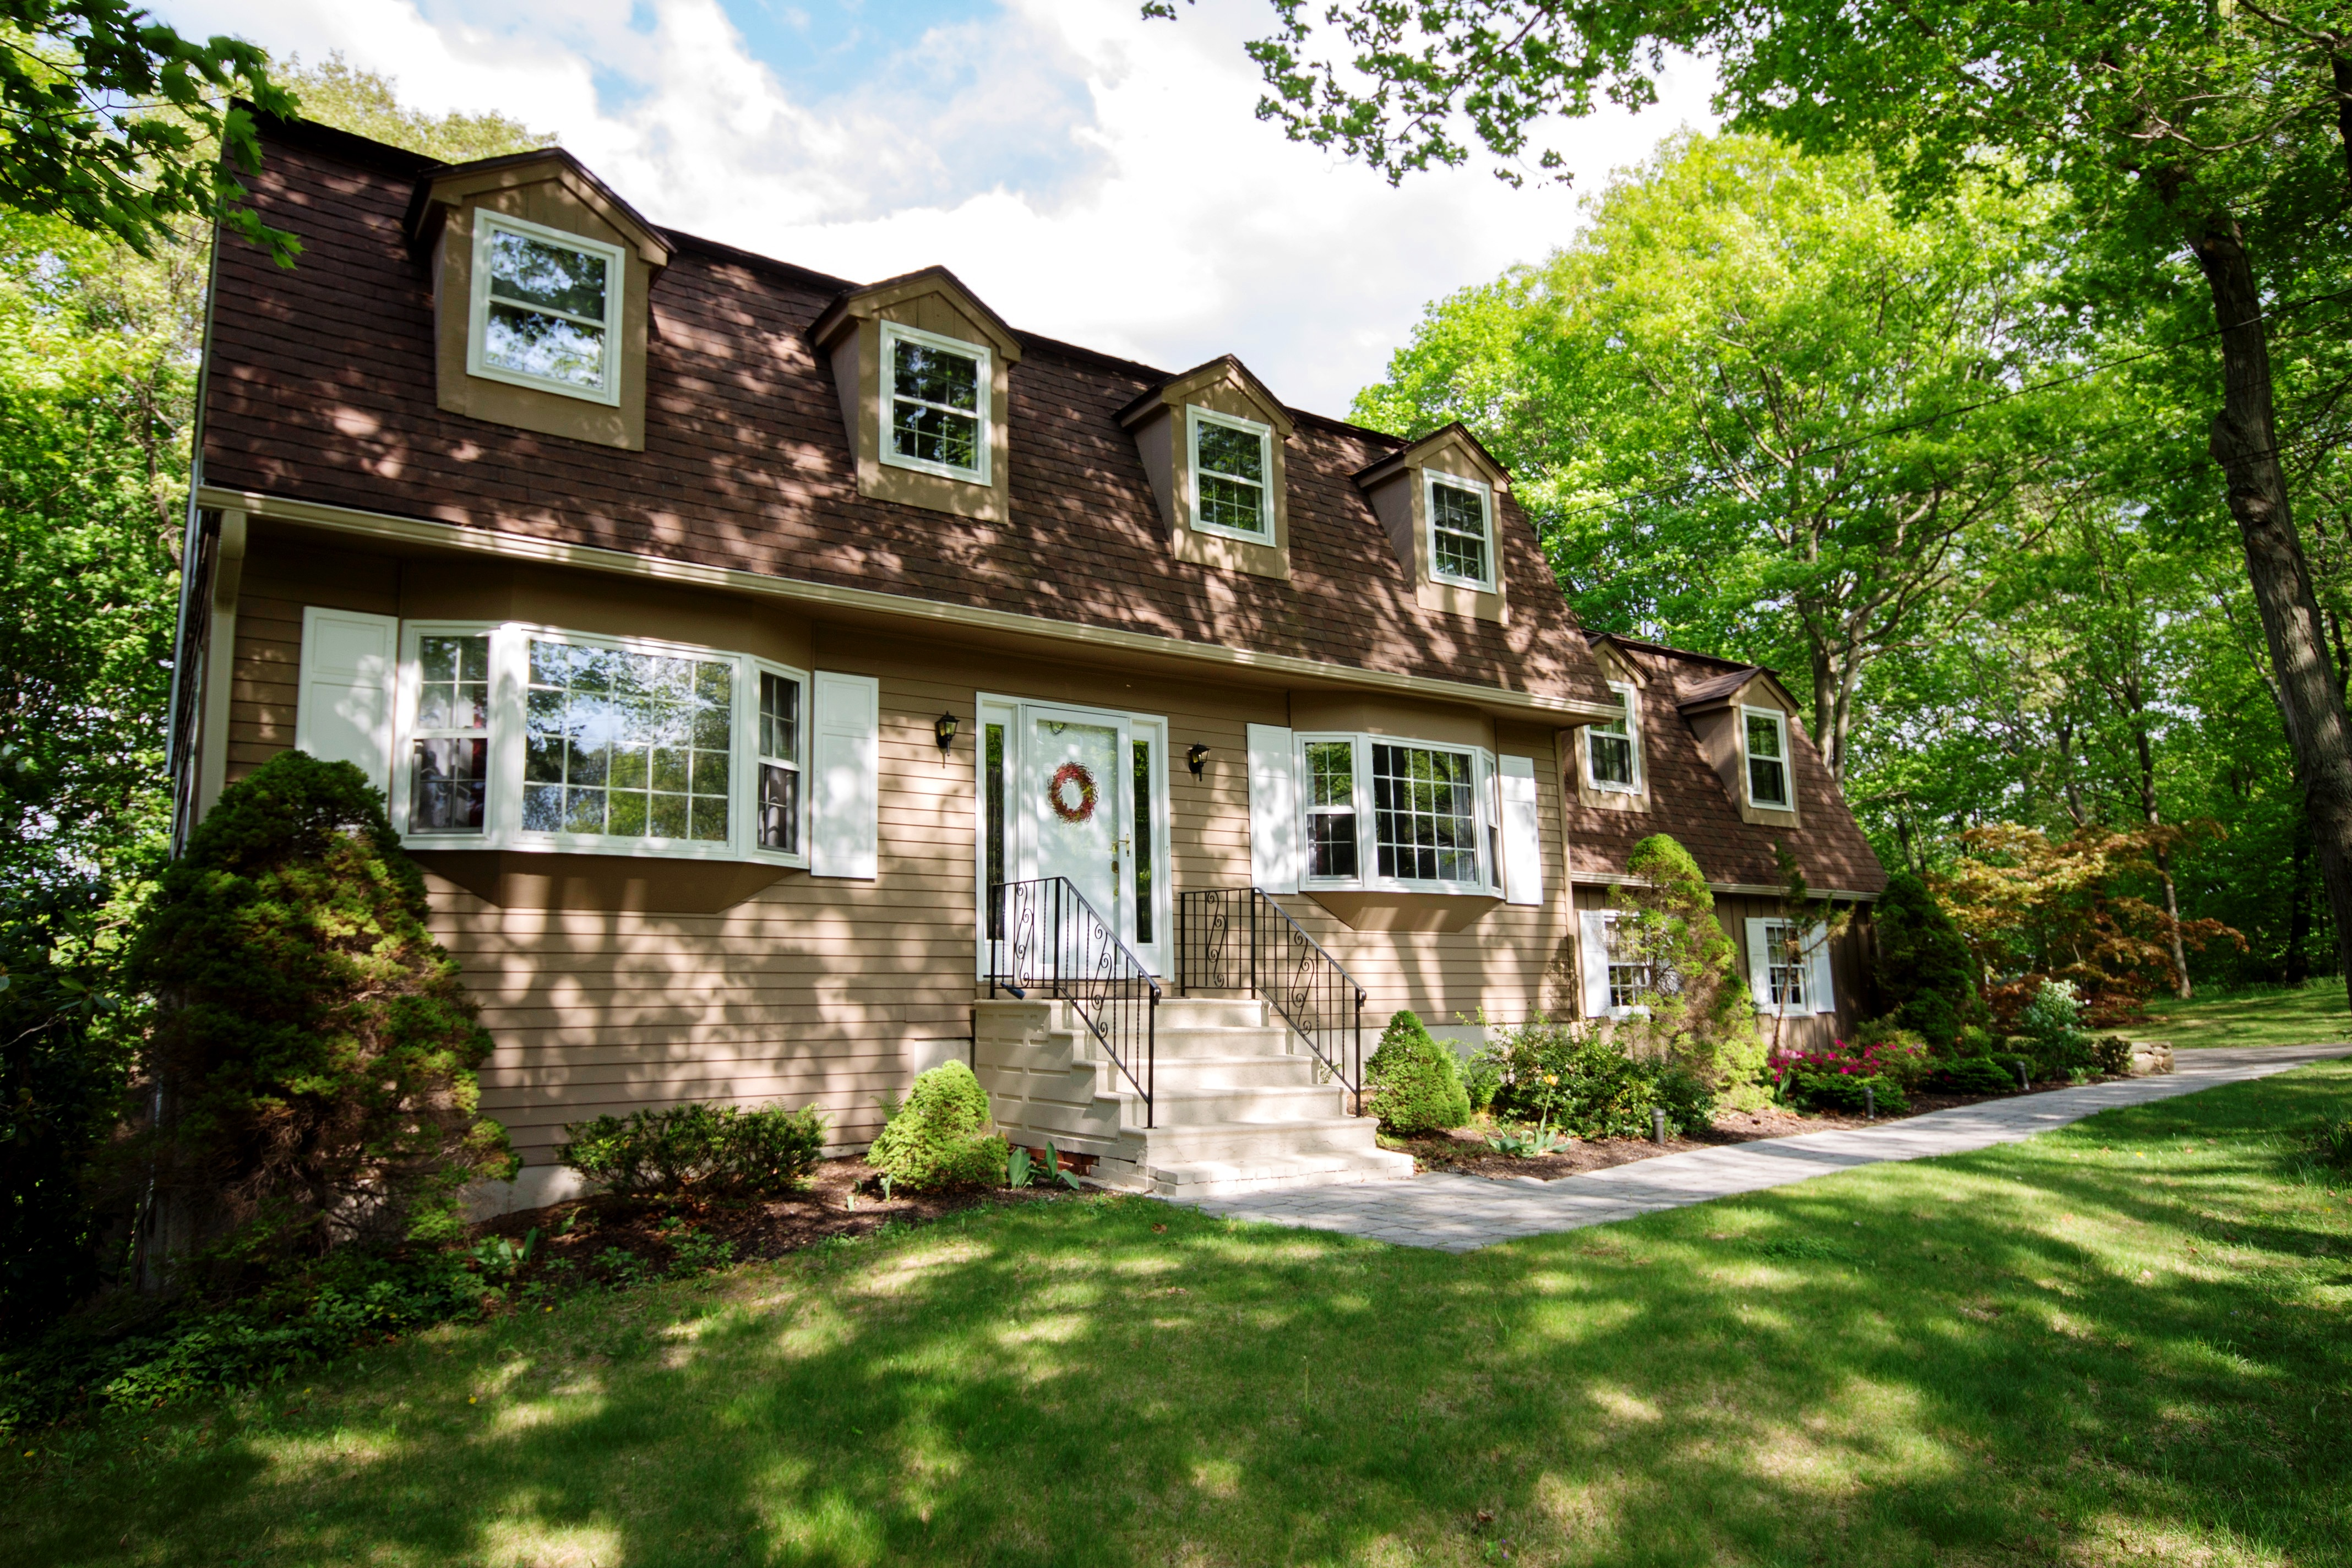 Single Family Home for Sale at Lovely Center Hall Colonial 28 Round Hill Drive Danbury, Connecticut 06811 United States